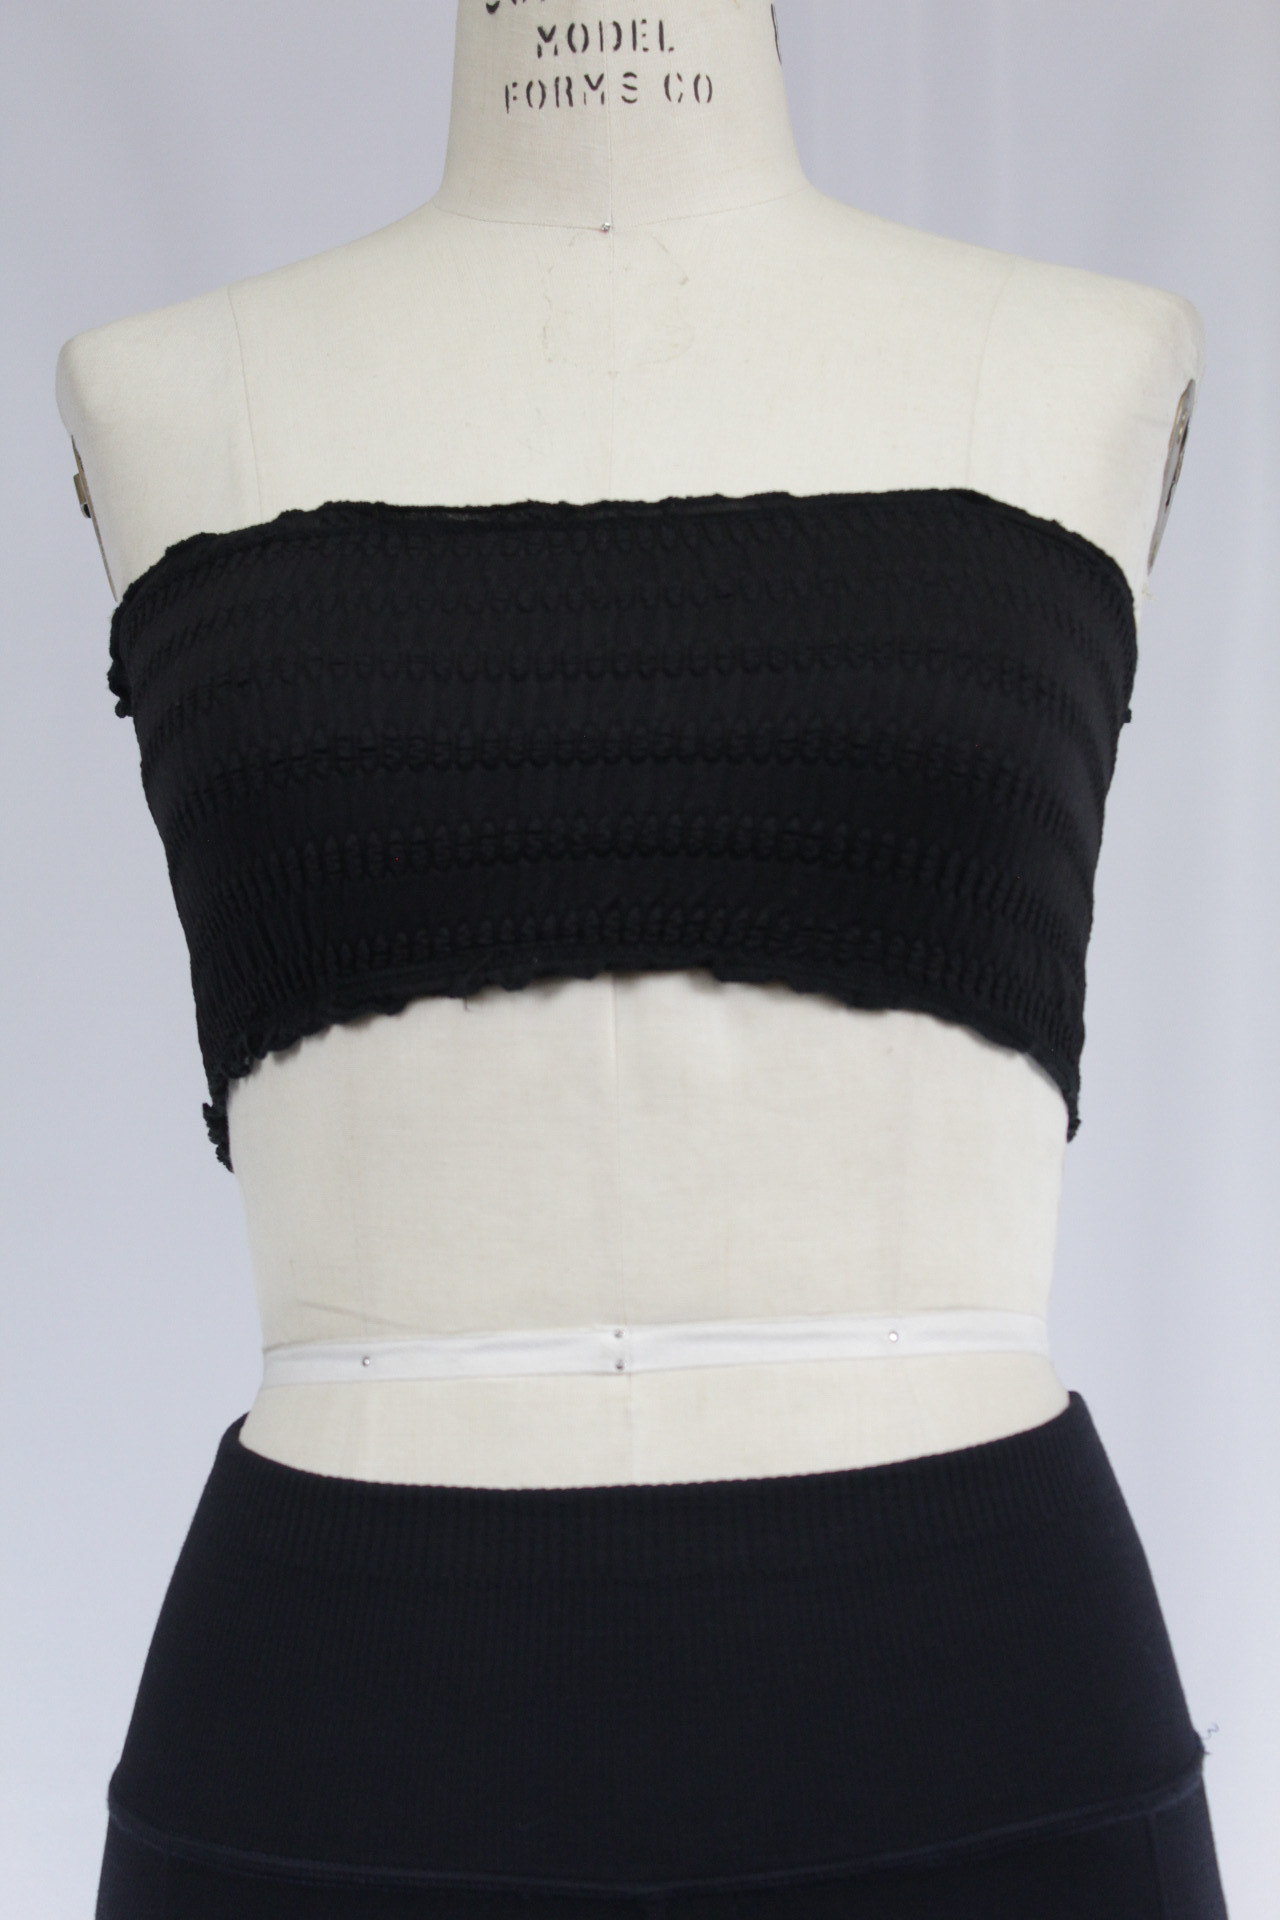 Details about  /New Free People Womens Seamless Stretchy Textured Strapless Black Bandeau Bra